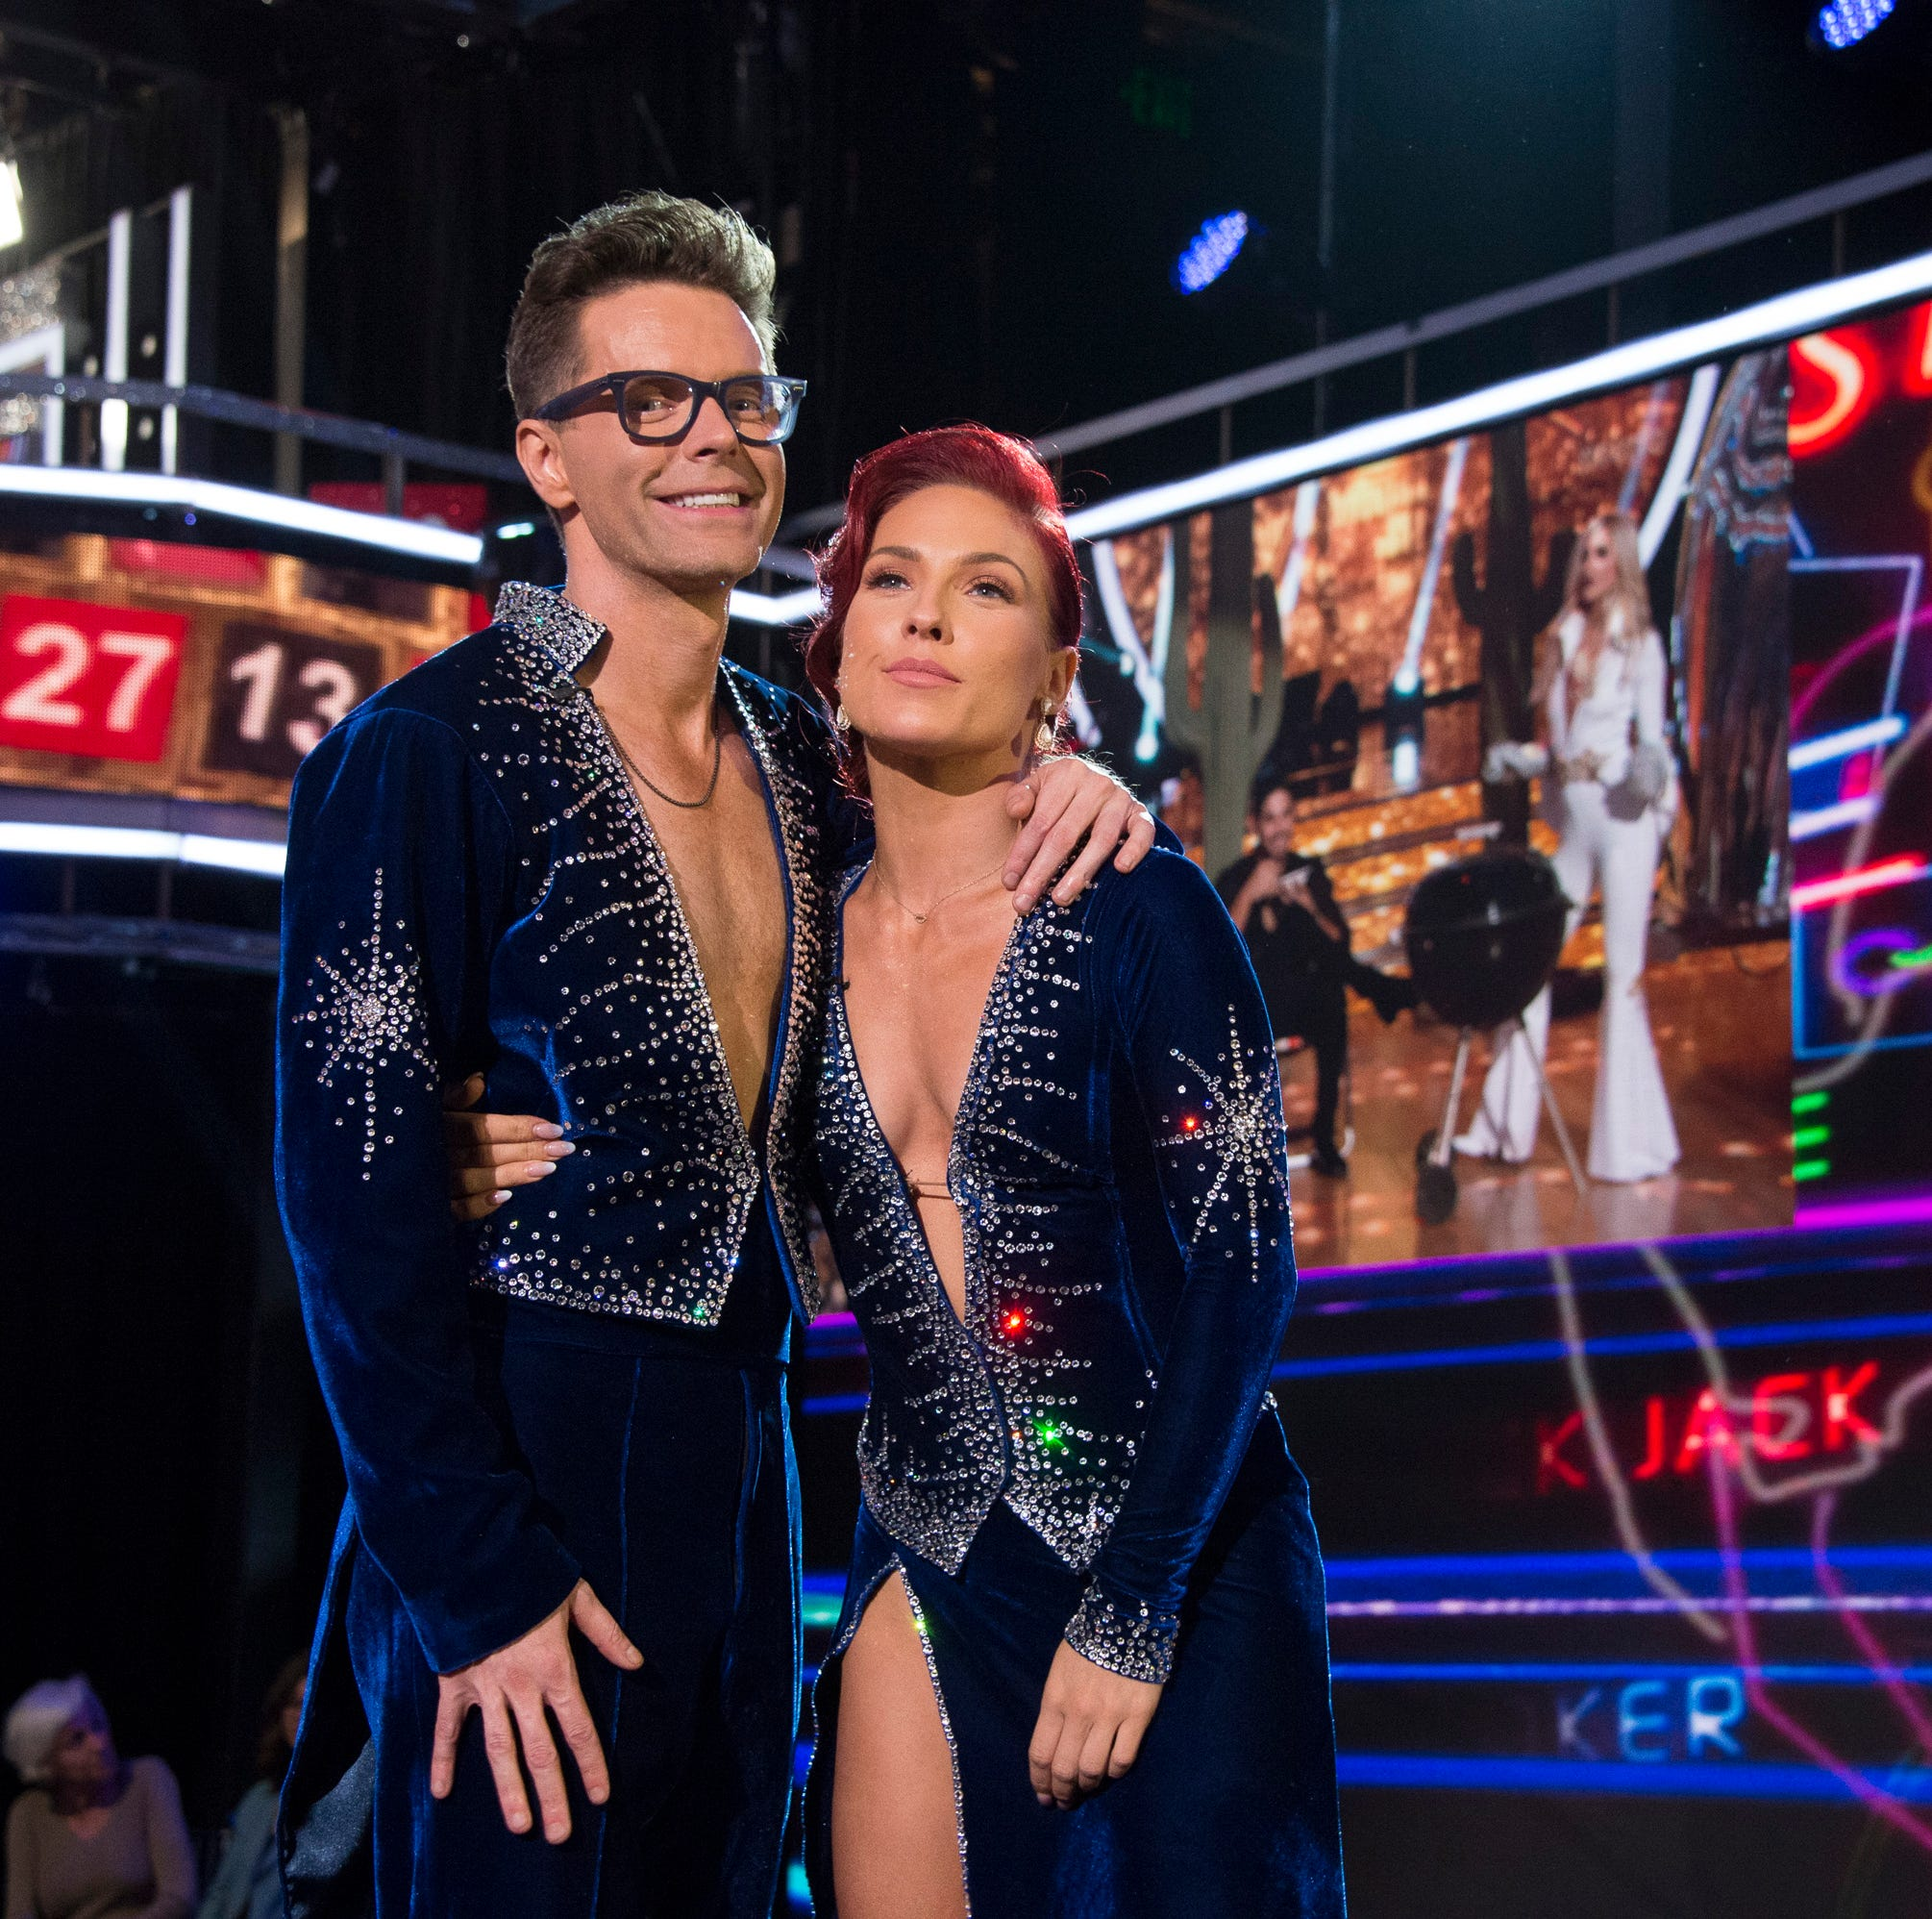 DWTS Finals: A look back at how Bobby Bones and Sharna Burgess got there